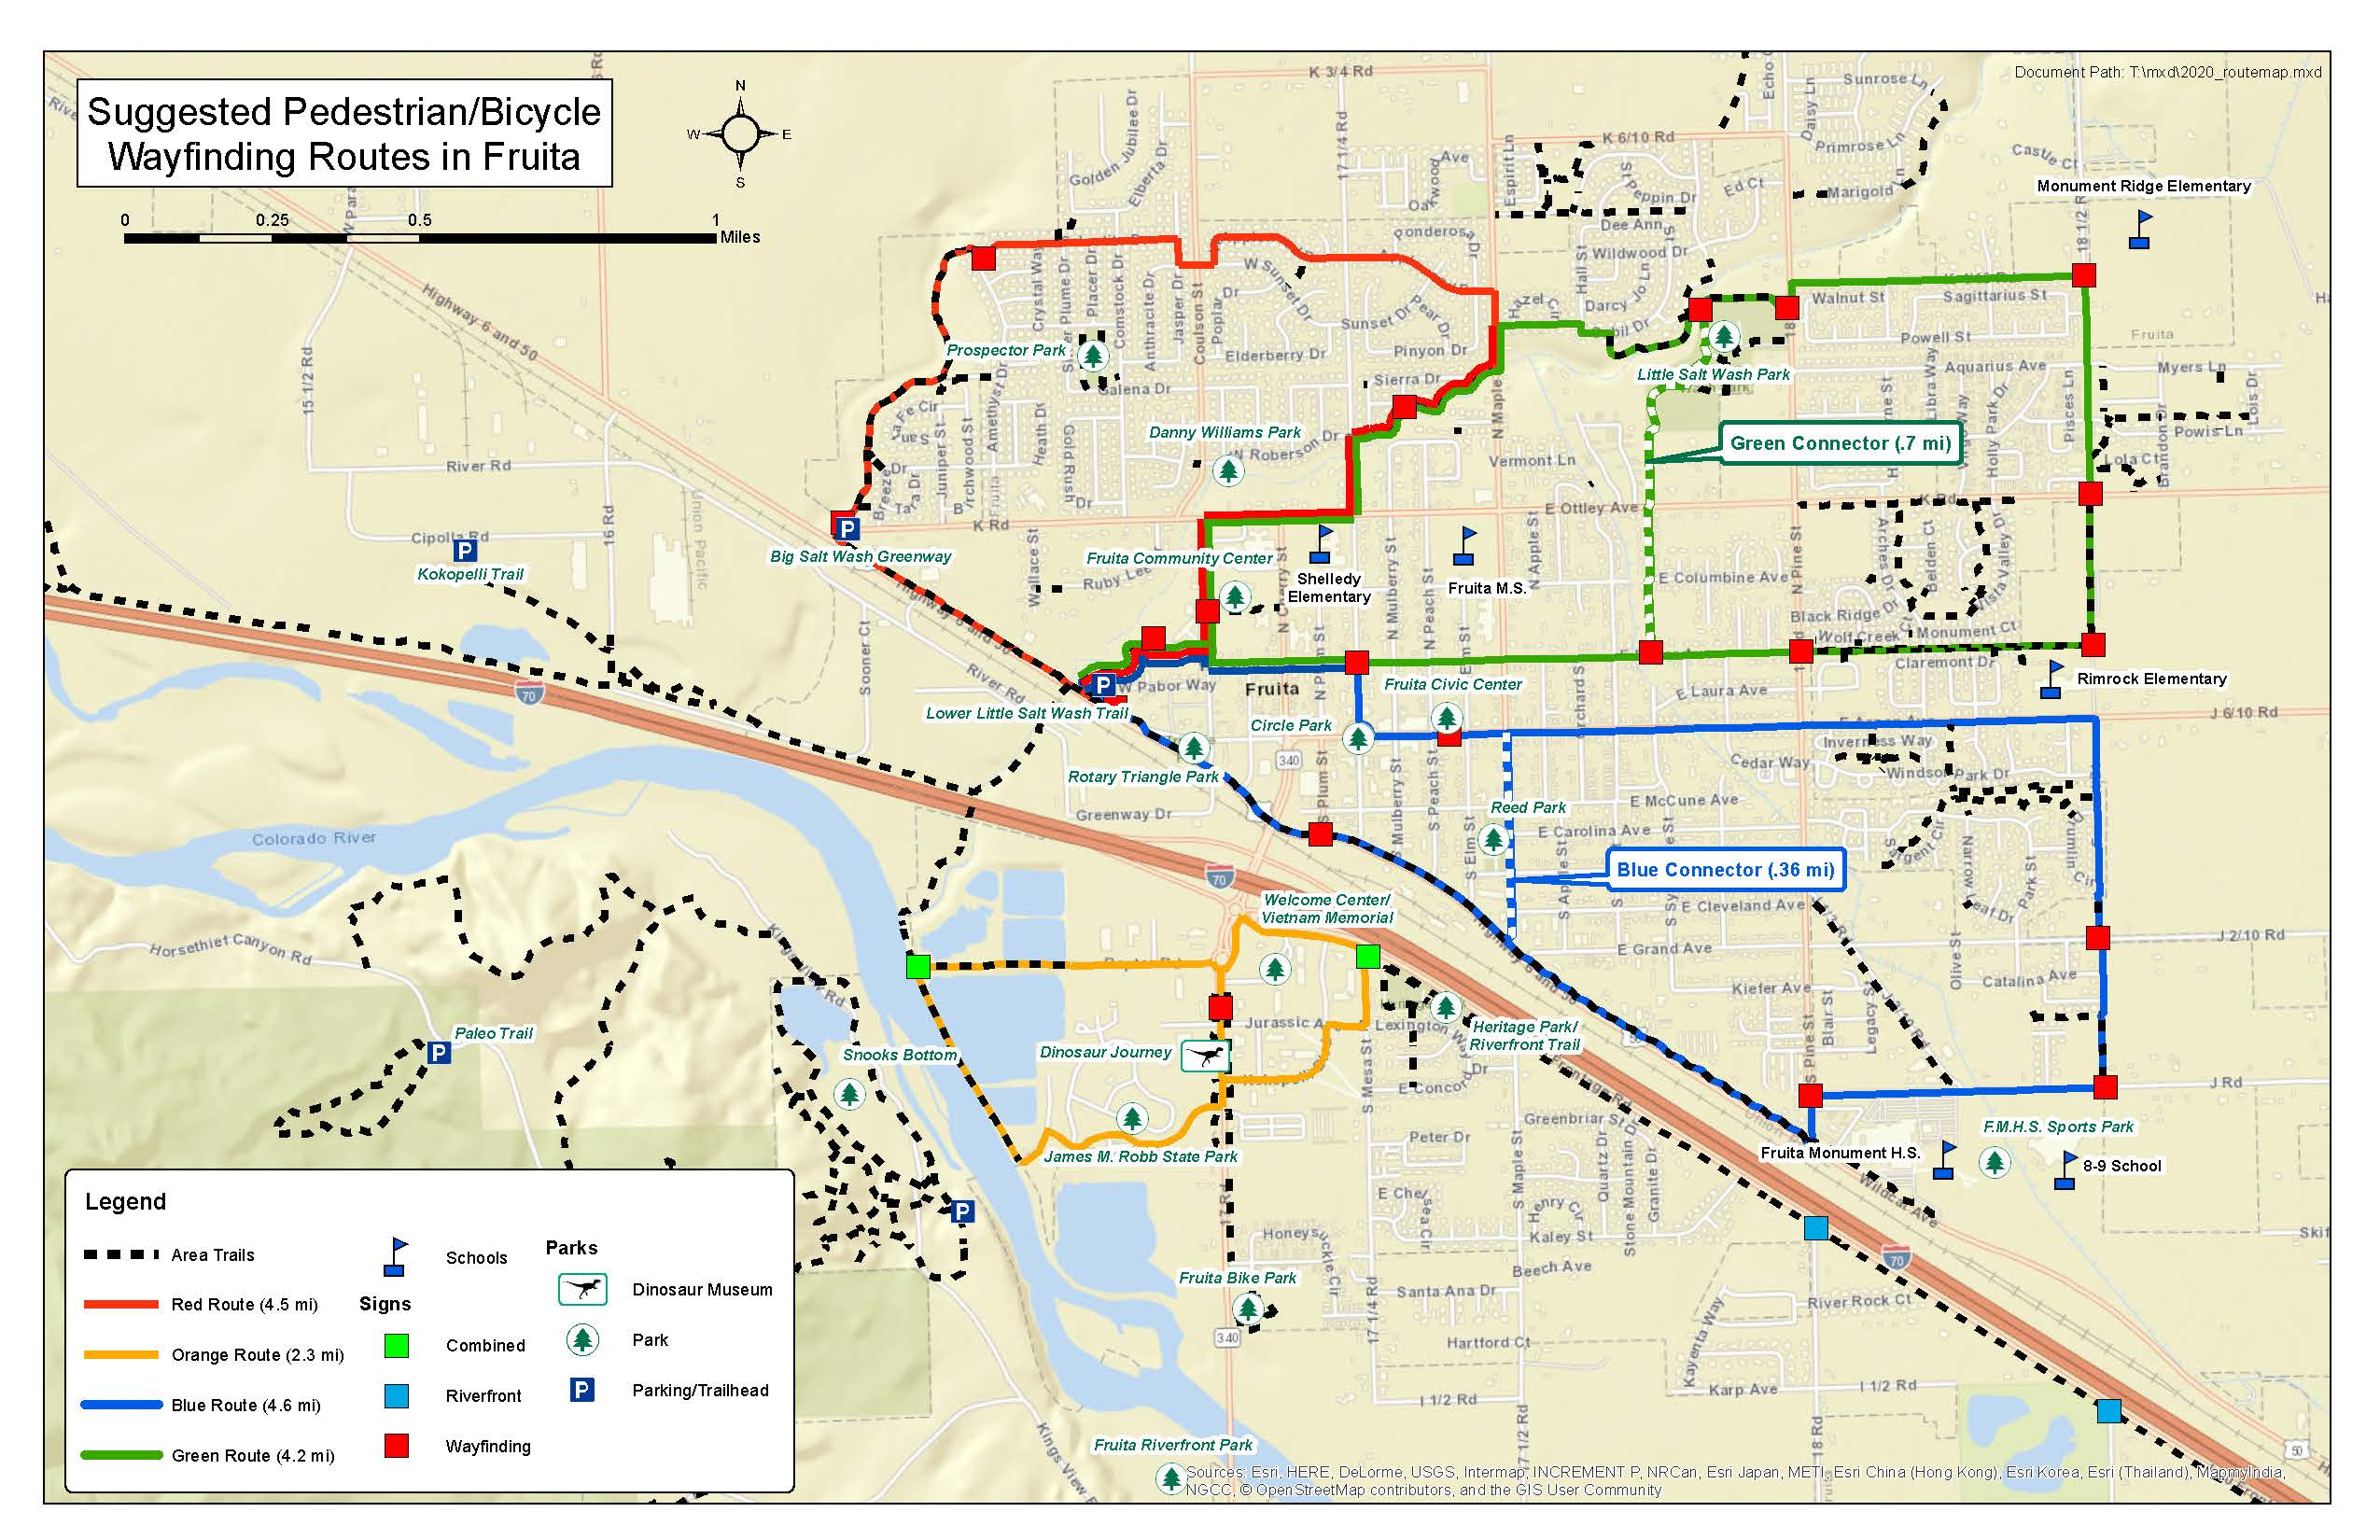 Suggested Routes in Fruita